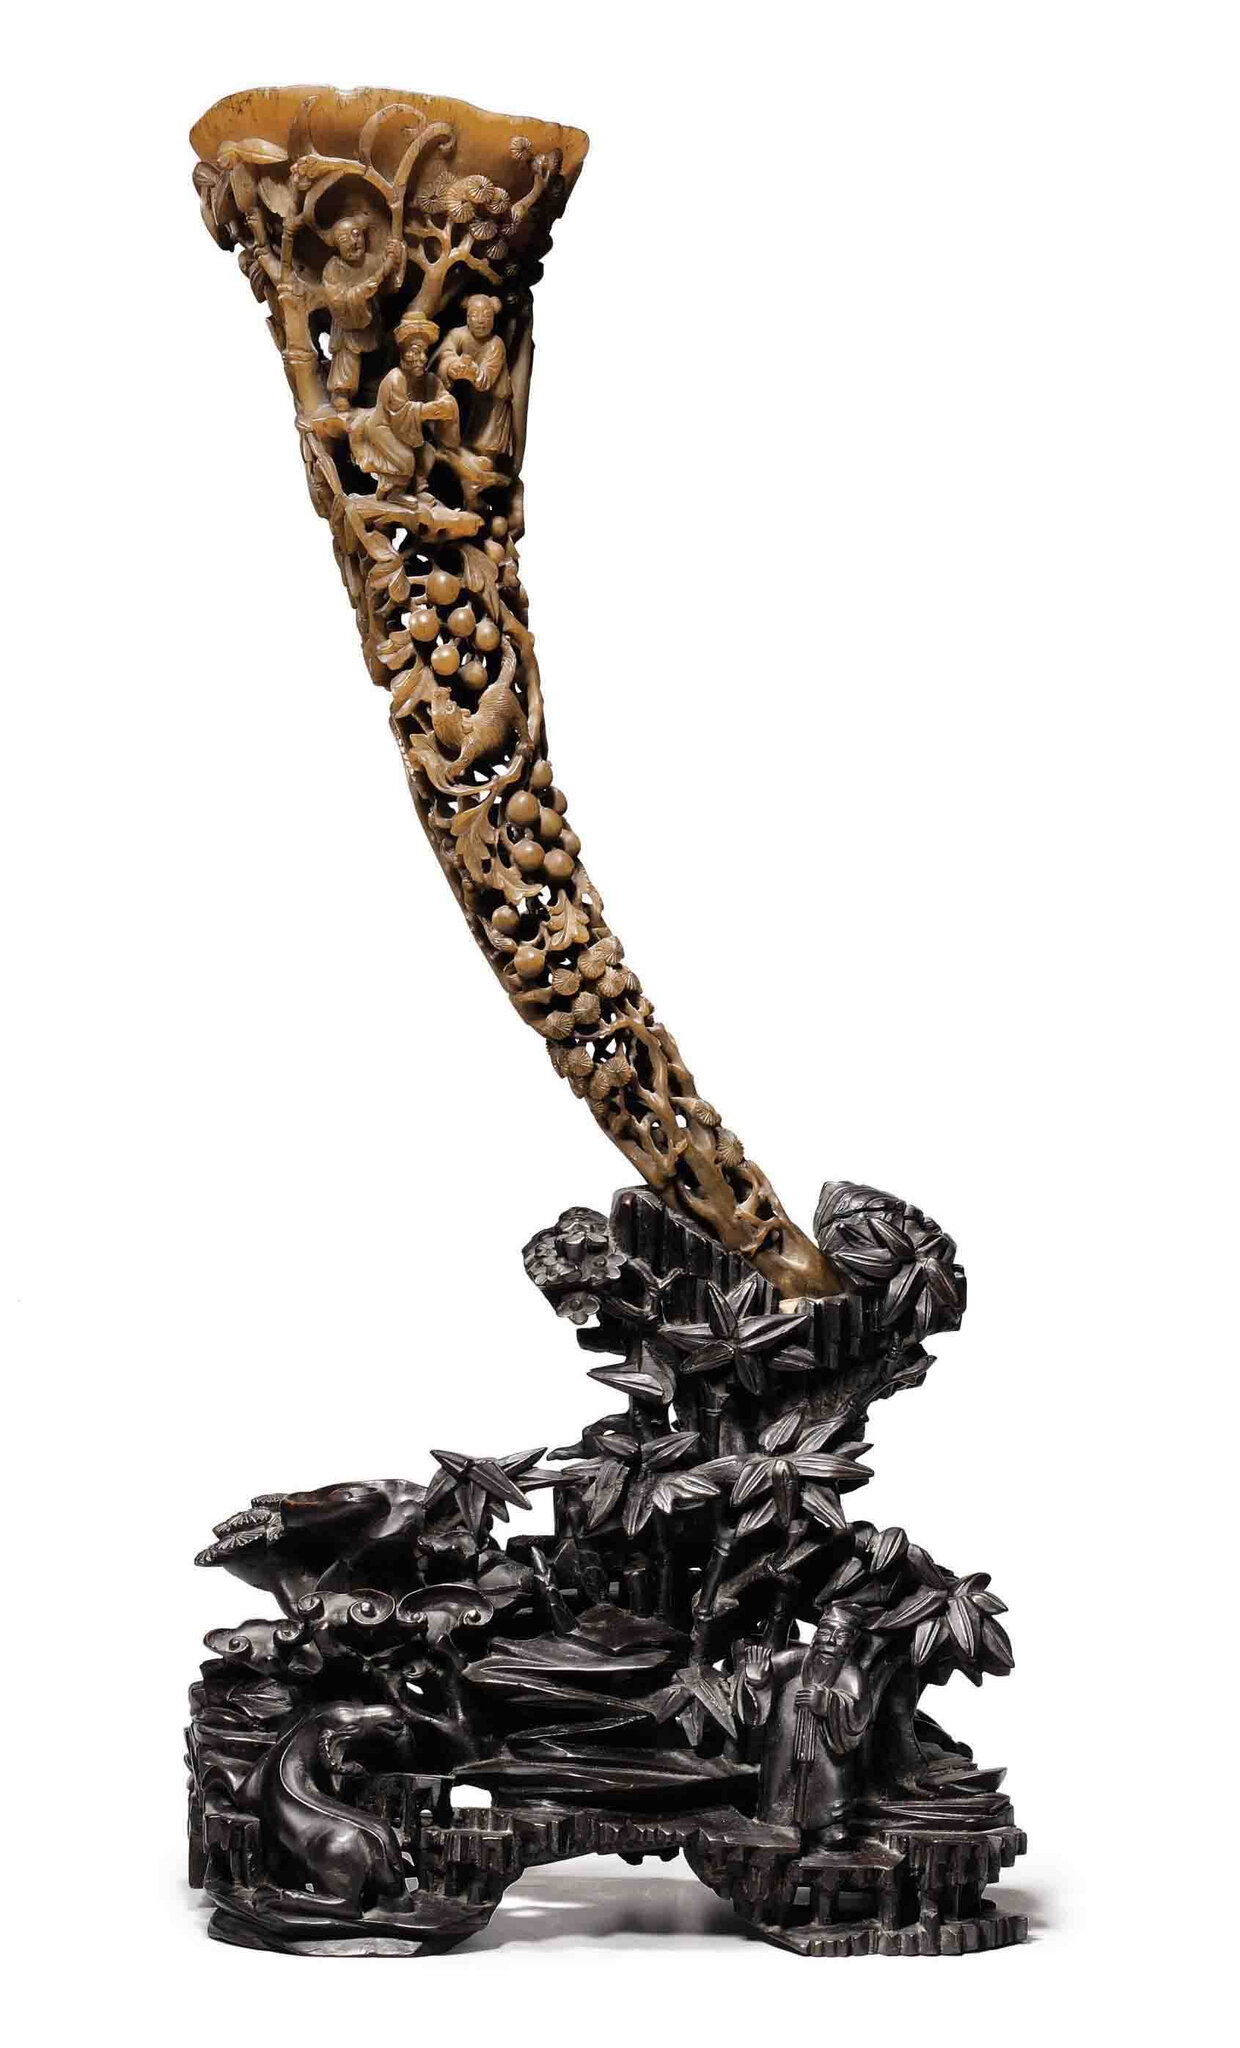 A large full-tip rhinoceros horn cup, 19th century